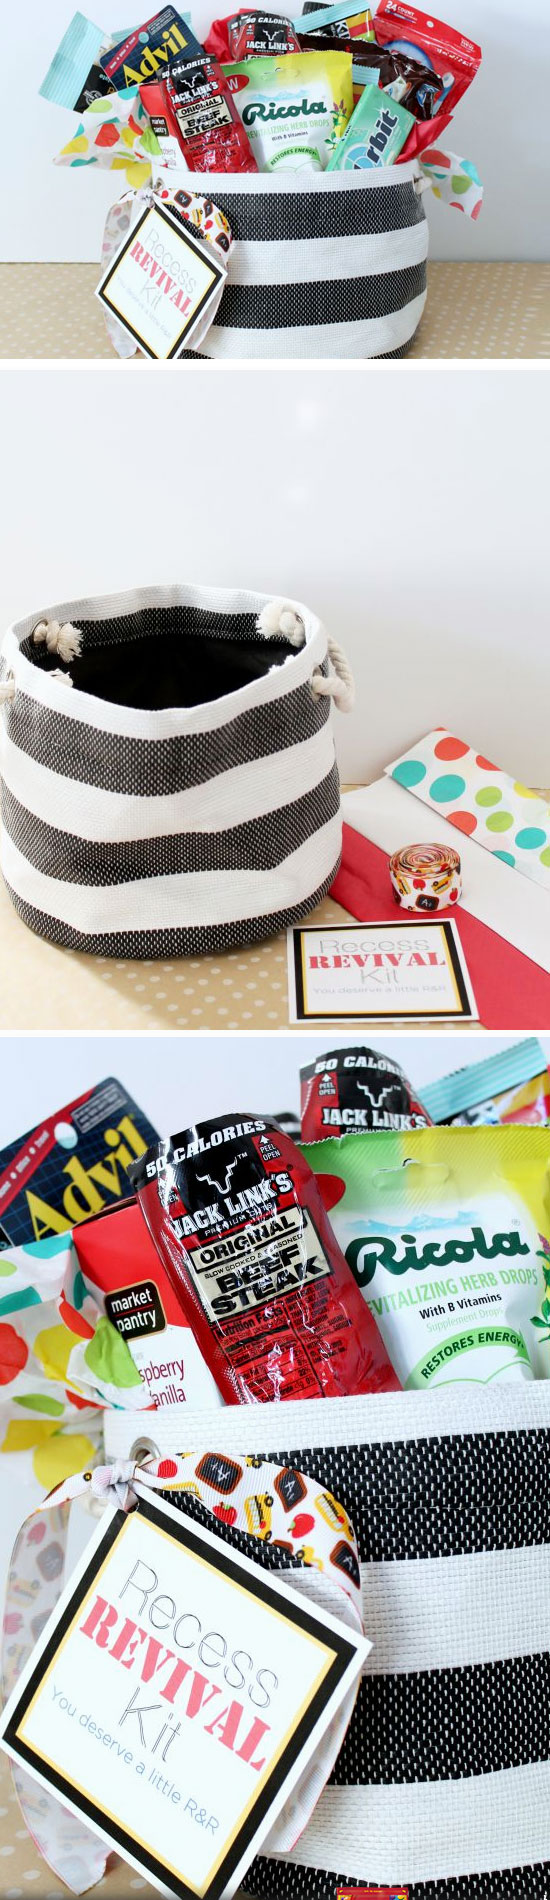 13 Awesome DIY Gifts for Teachers